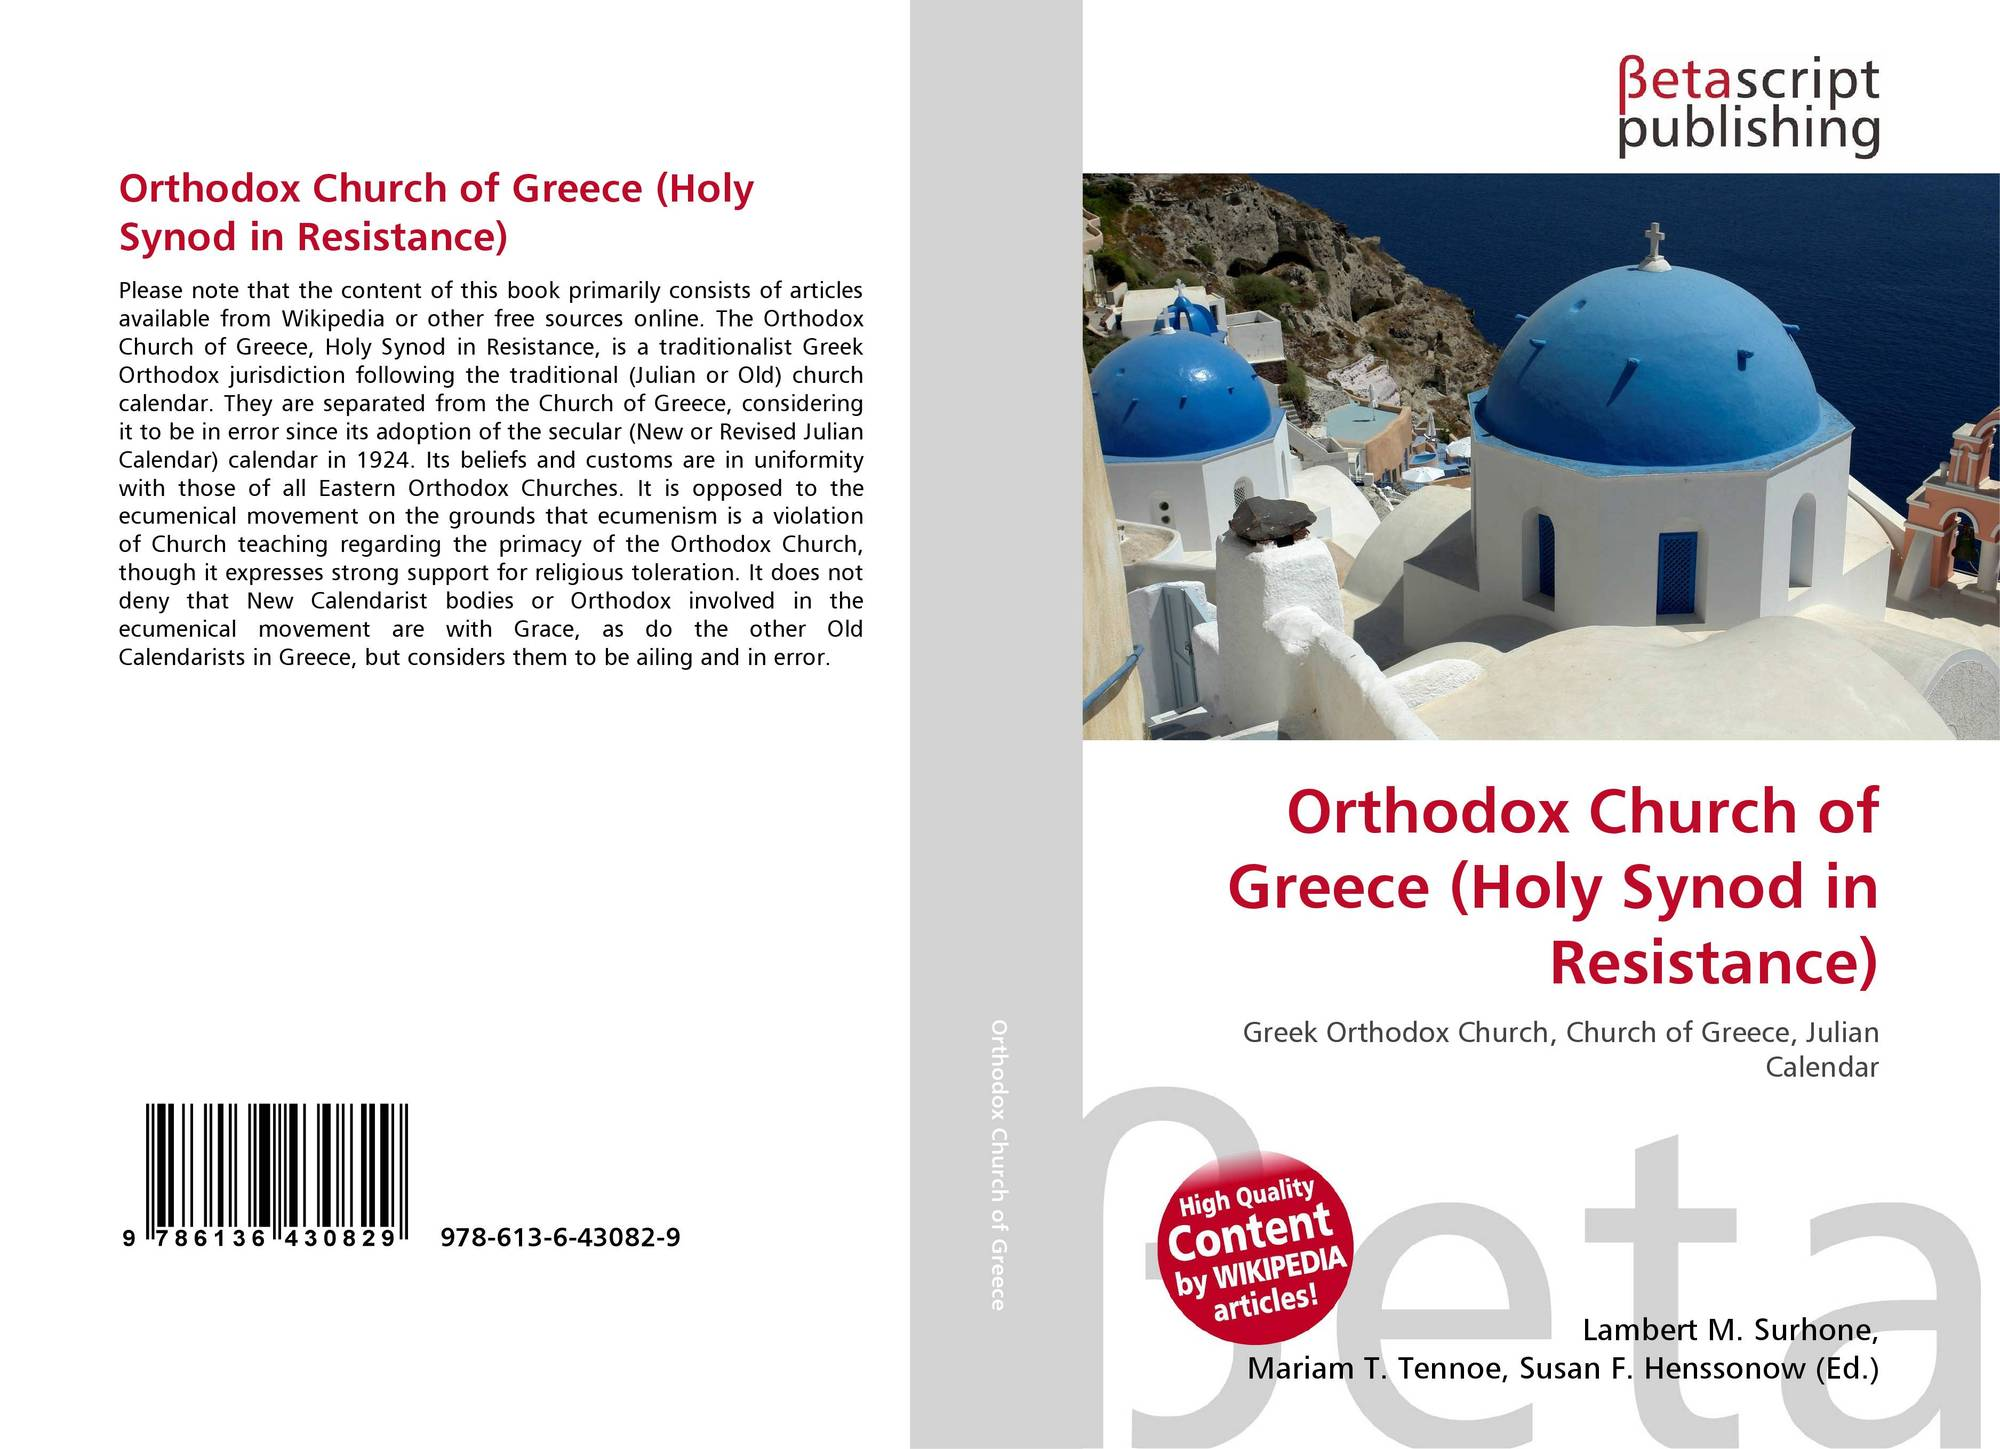 an analysis of the greek orthodox church a branch of christianity Eastern orthodox church orthodox catholic church, greek orthodox church general information one of the three branches of world christianity and the major christian church in the middle east and eastern europe, the orthodox church, also sometimes called the eastern church, or the greek orthodox, or orthodox catholic church.